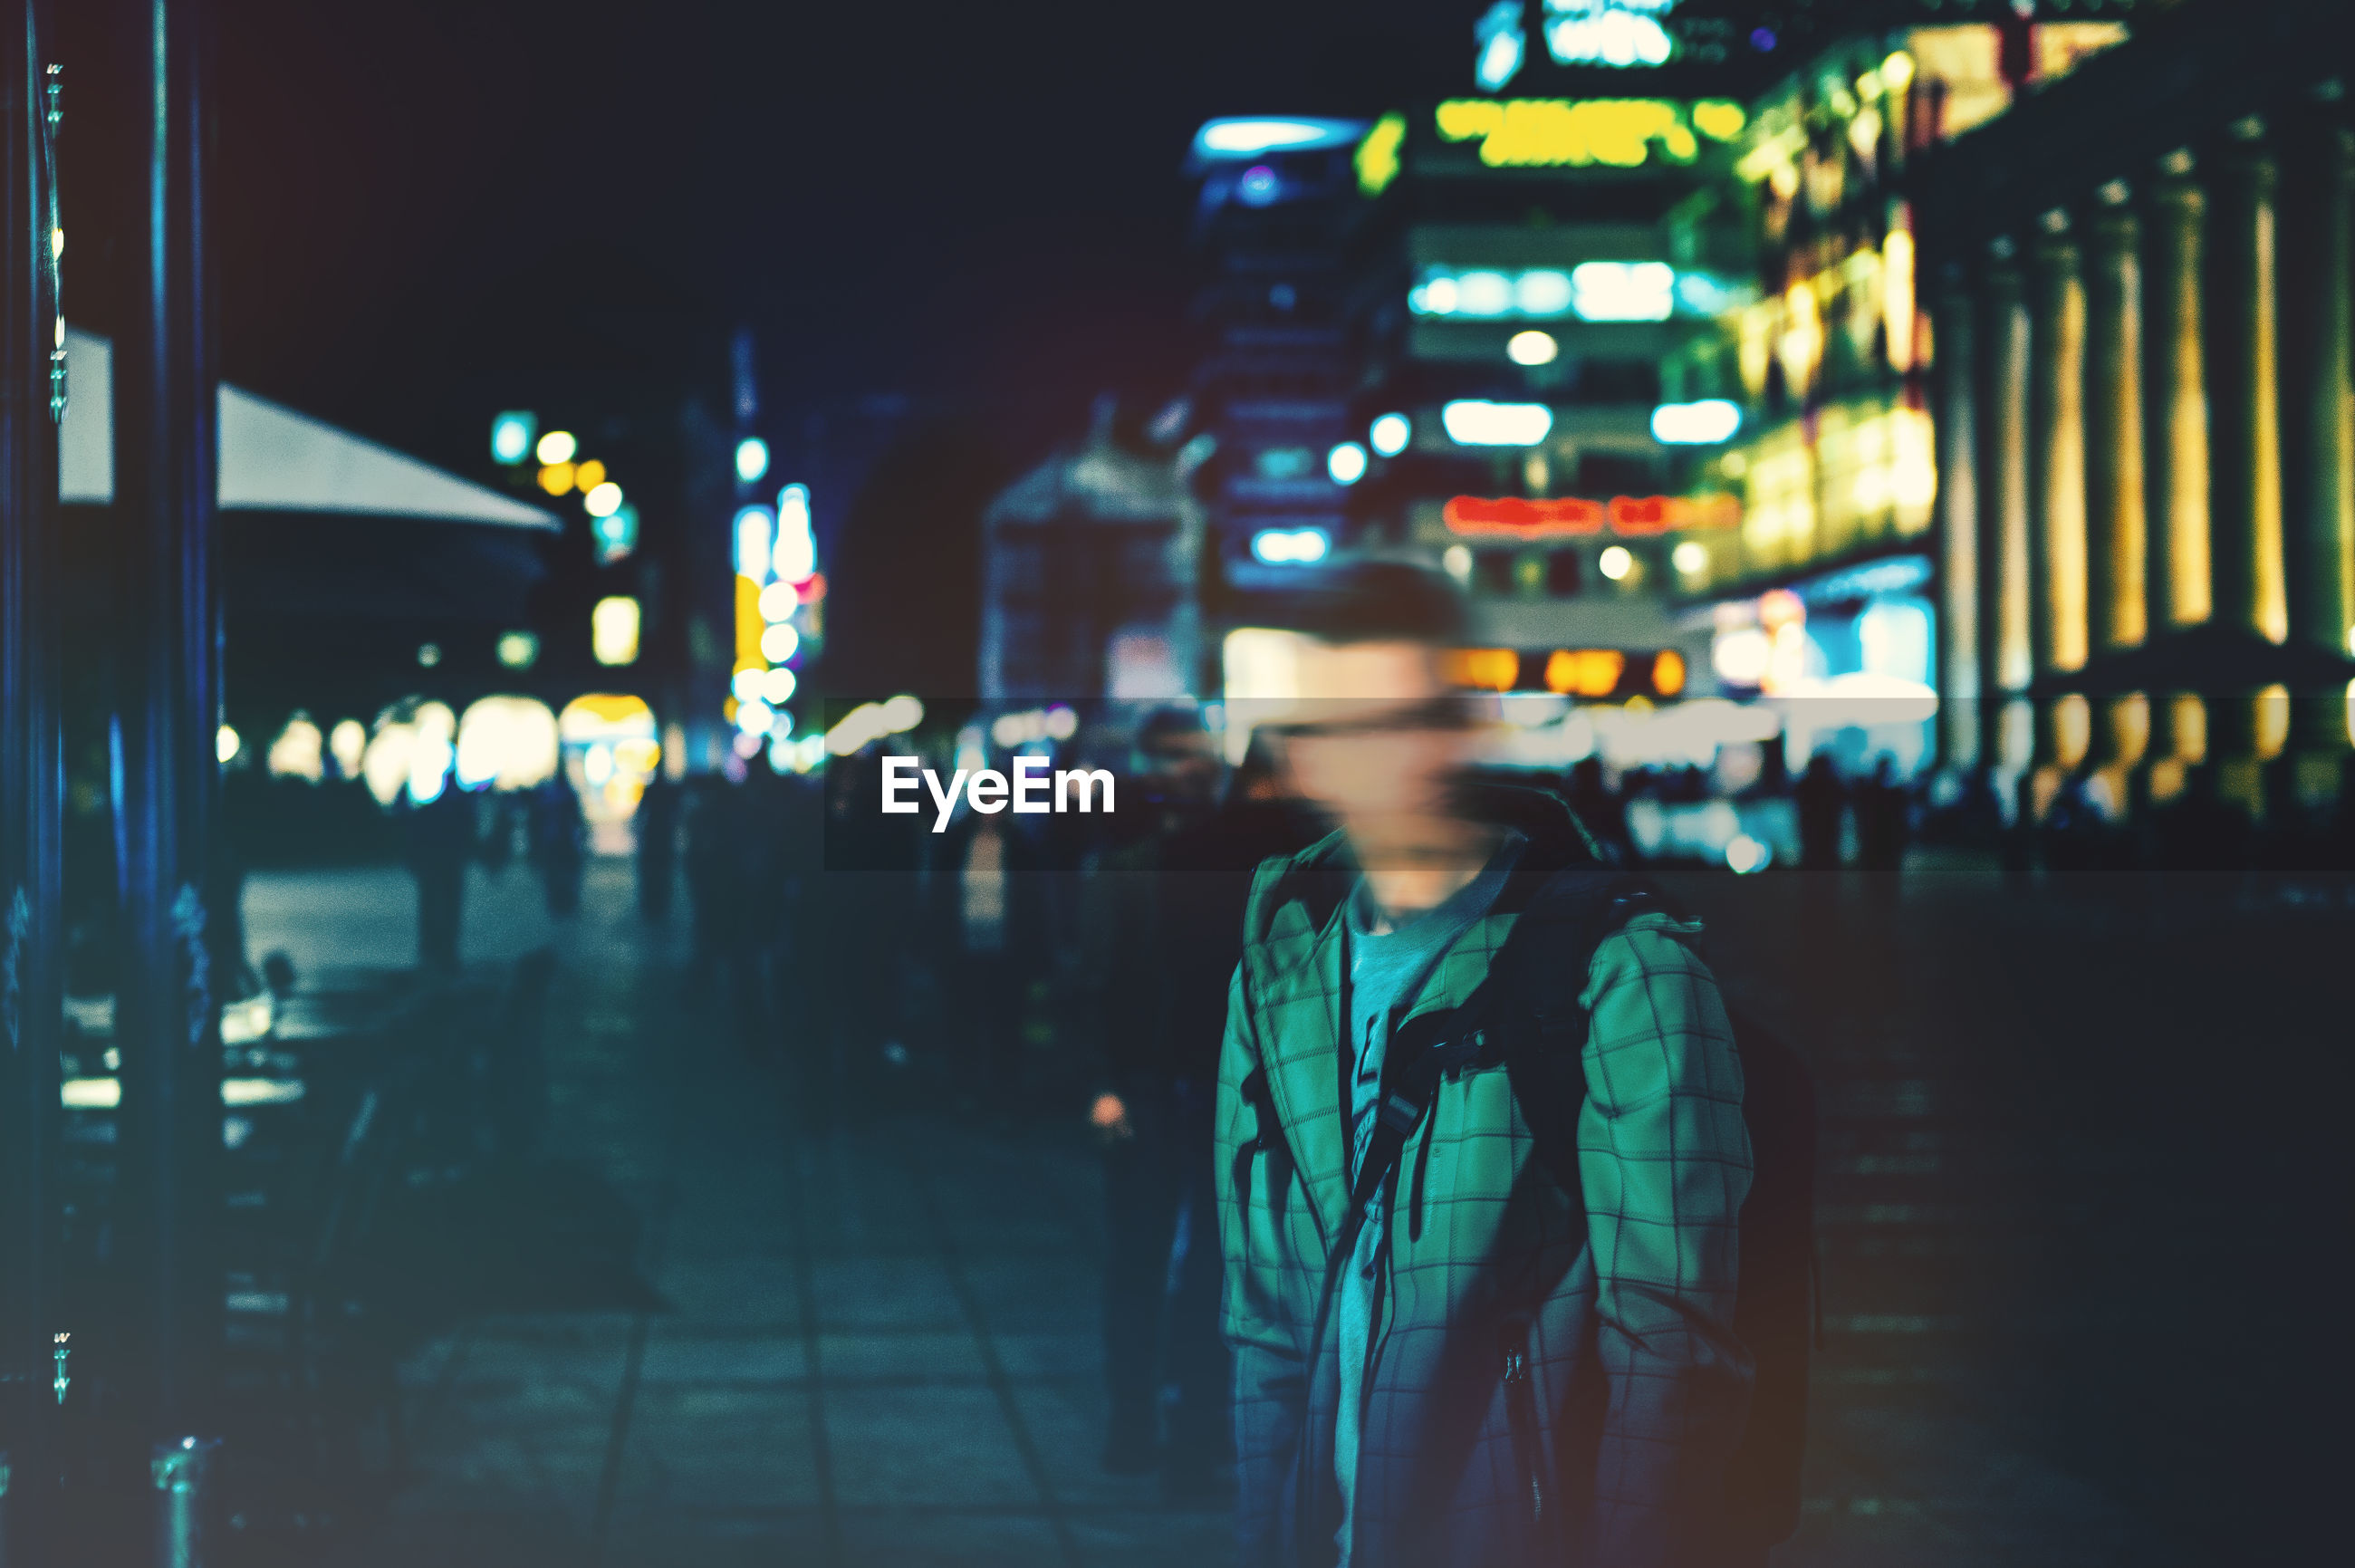 Blurred motion of man on street in city at night